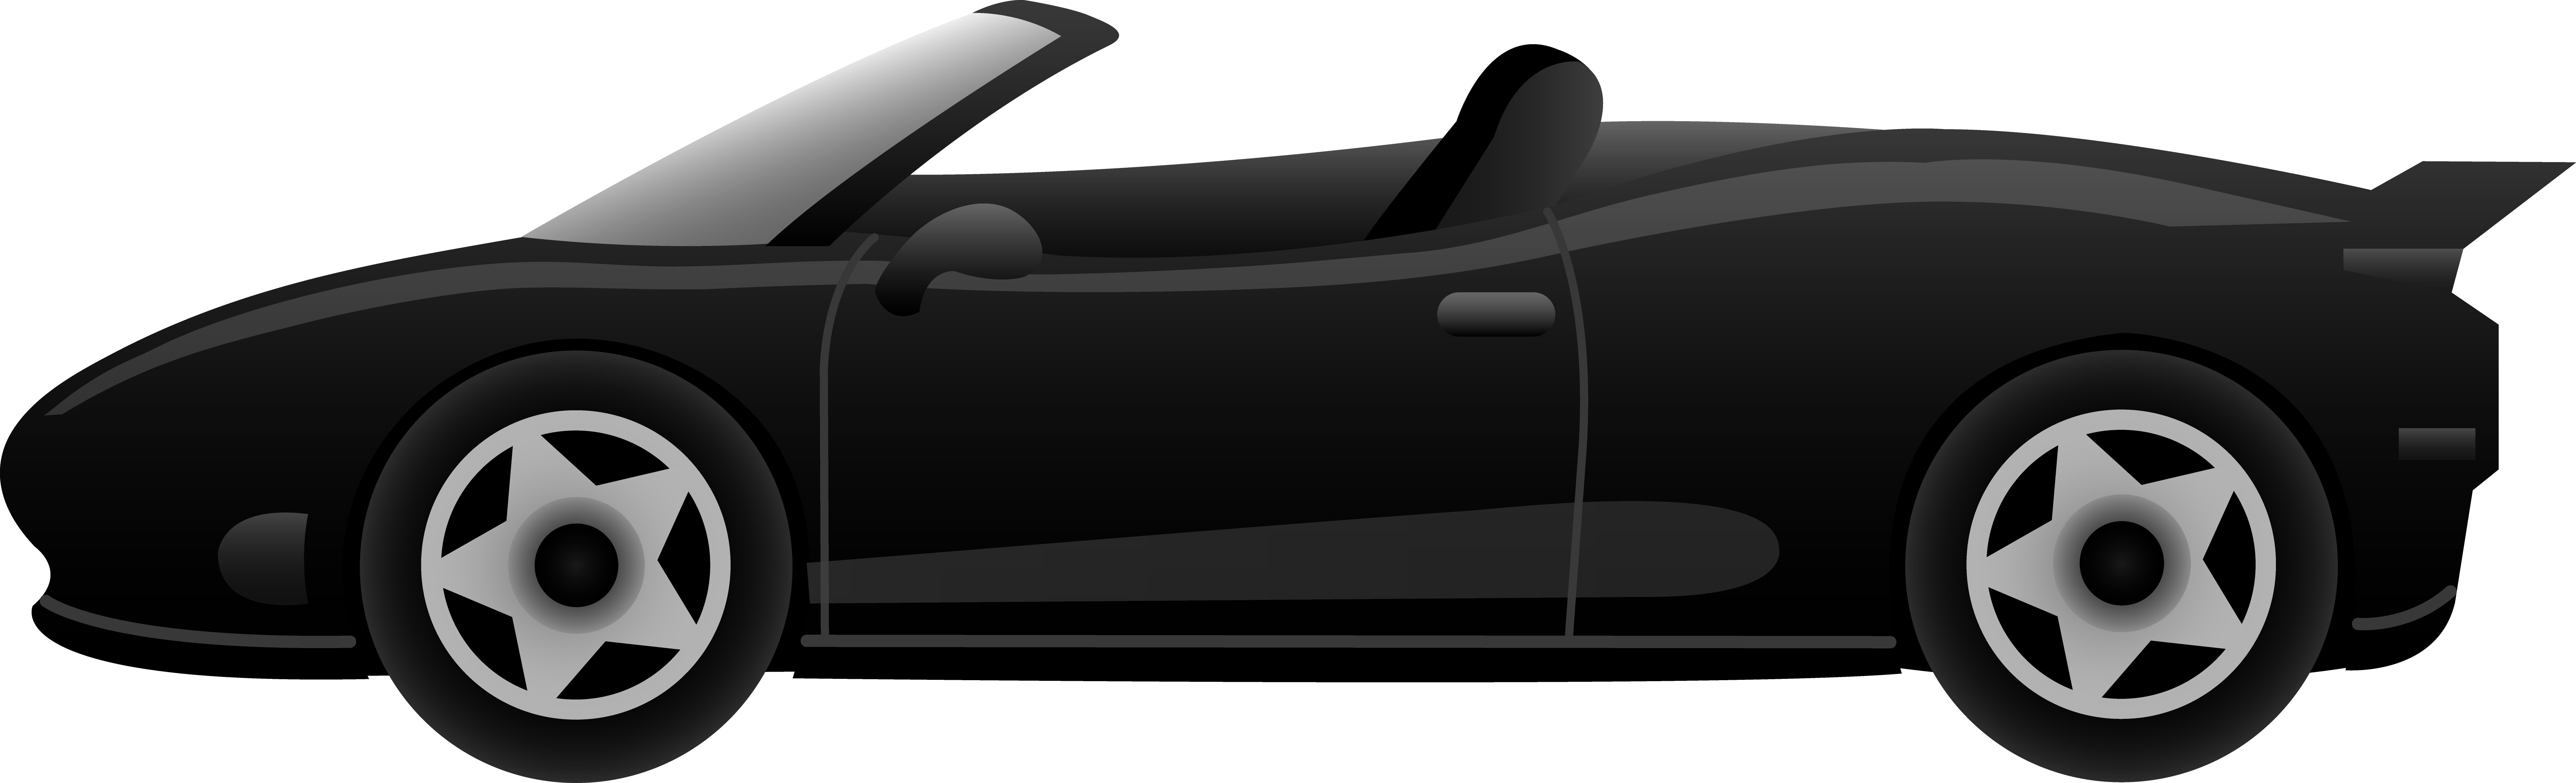 7863x2391 Race Car Clipart Side View